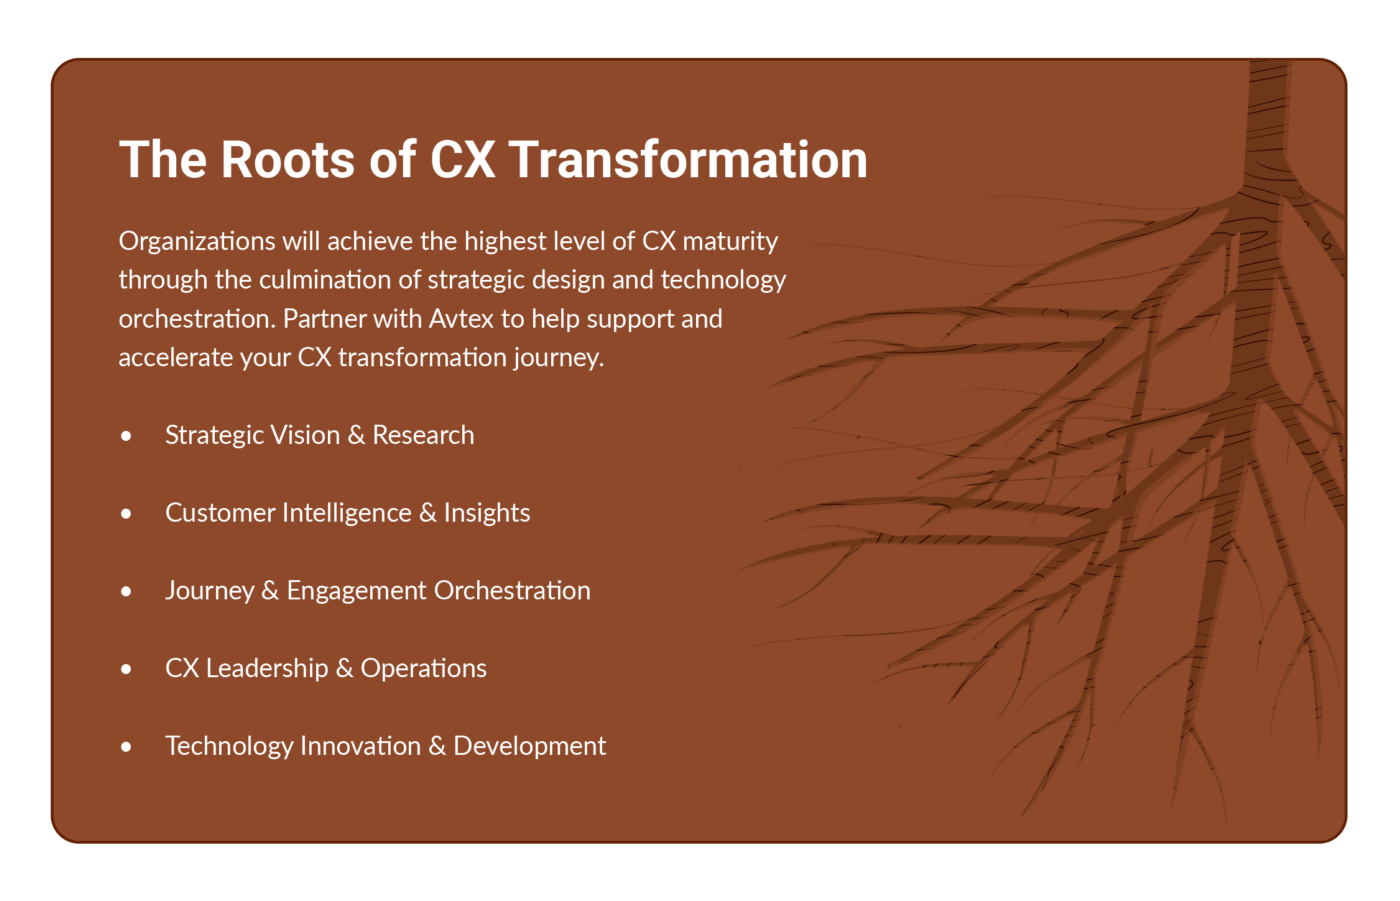 The Roots of CX Transformation Image